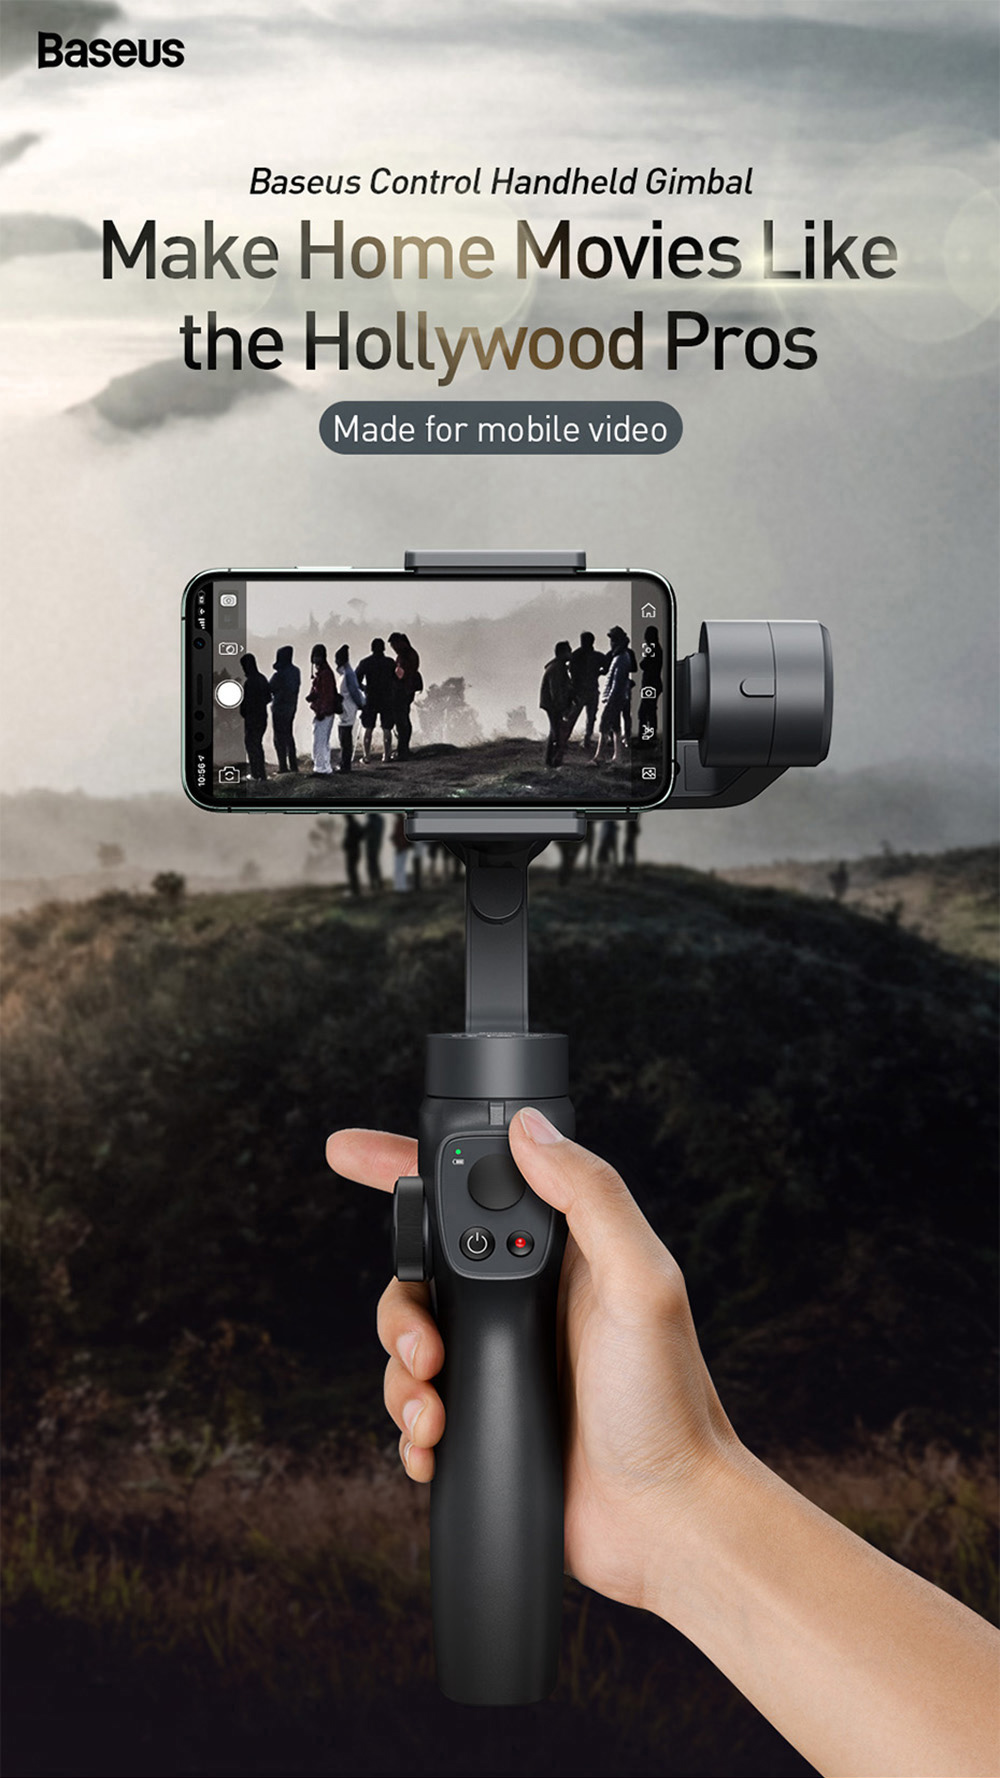 Baseus Gimbal Stabilizer for iPhone Action Camera - Black